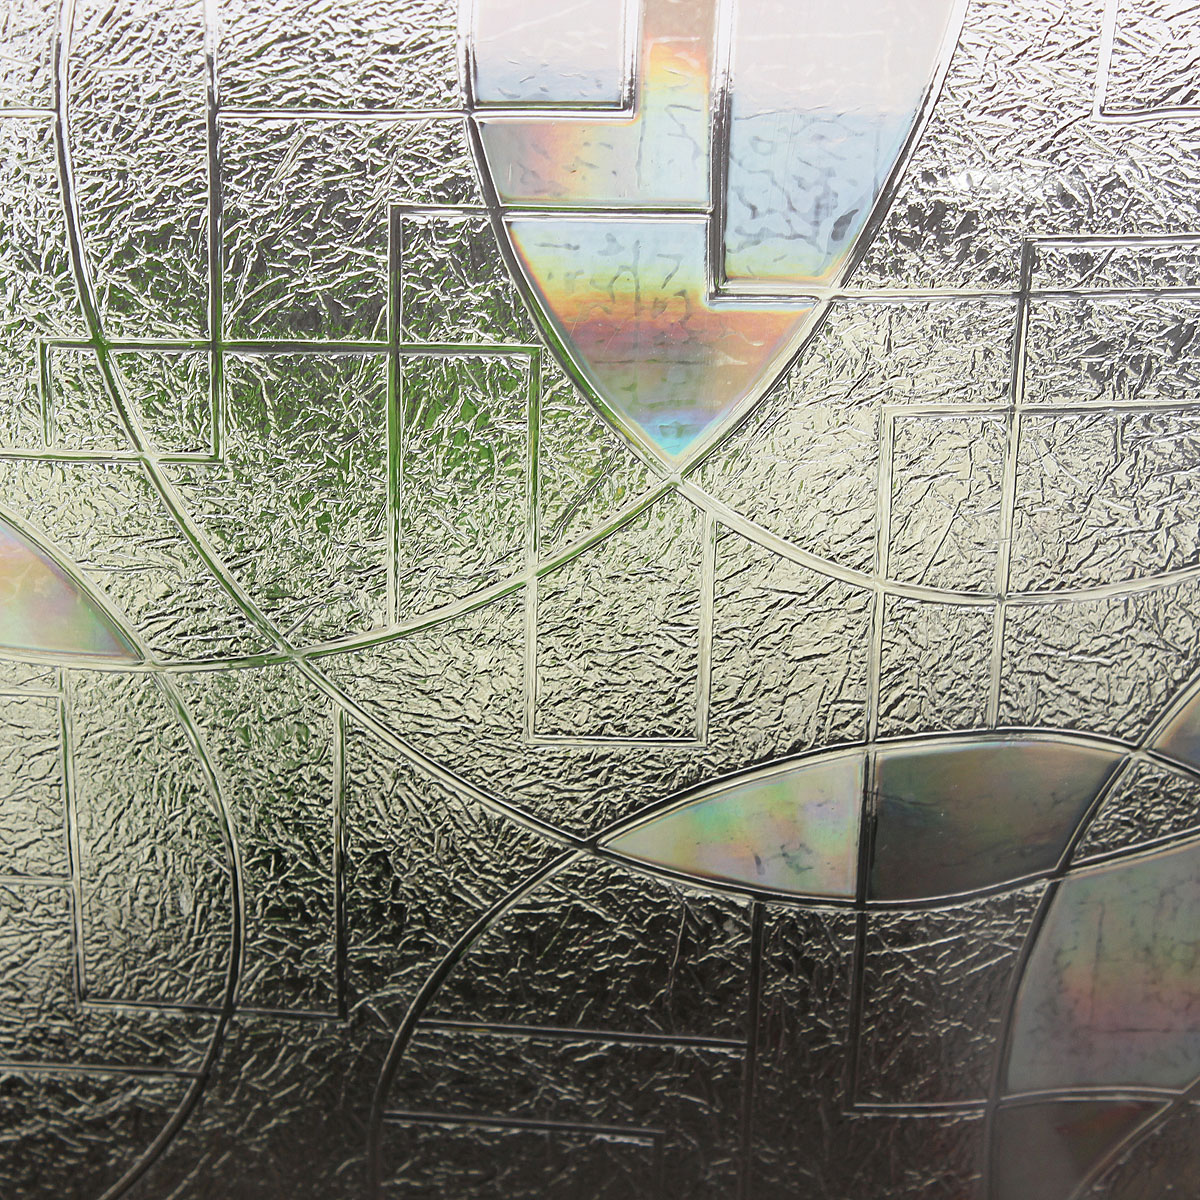 90 50cm 3d Static Cling Stained Glass Film Paper Frosted